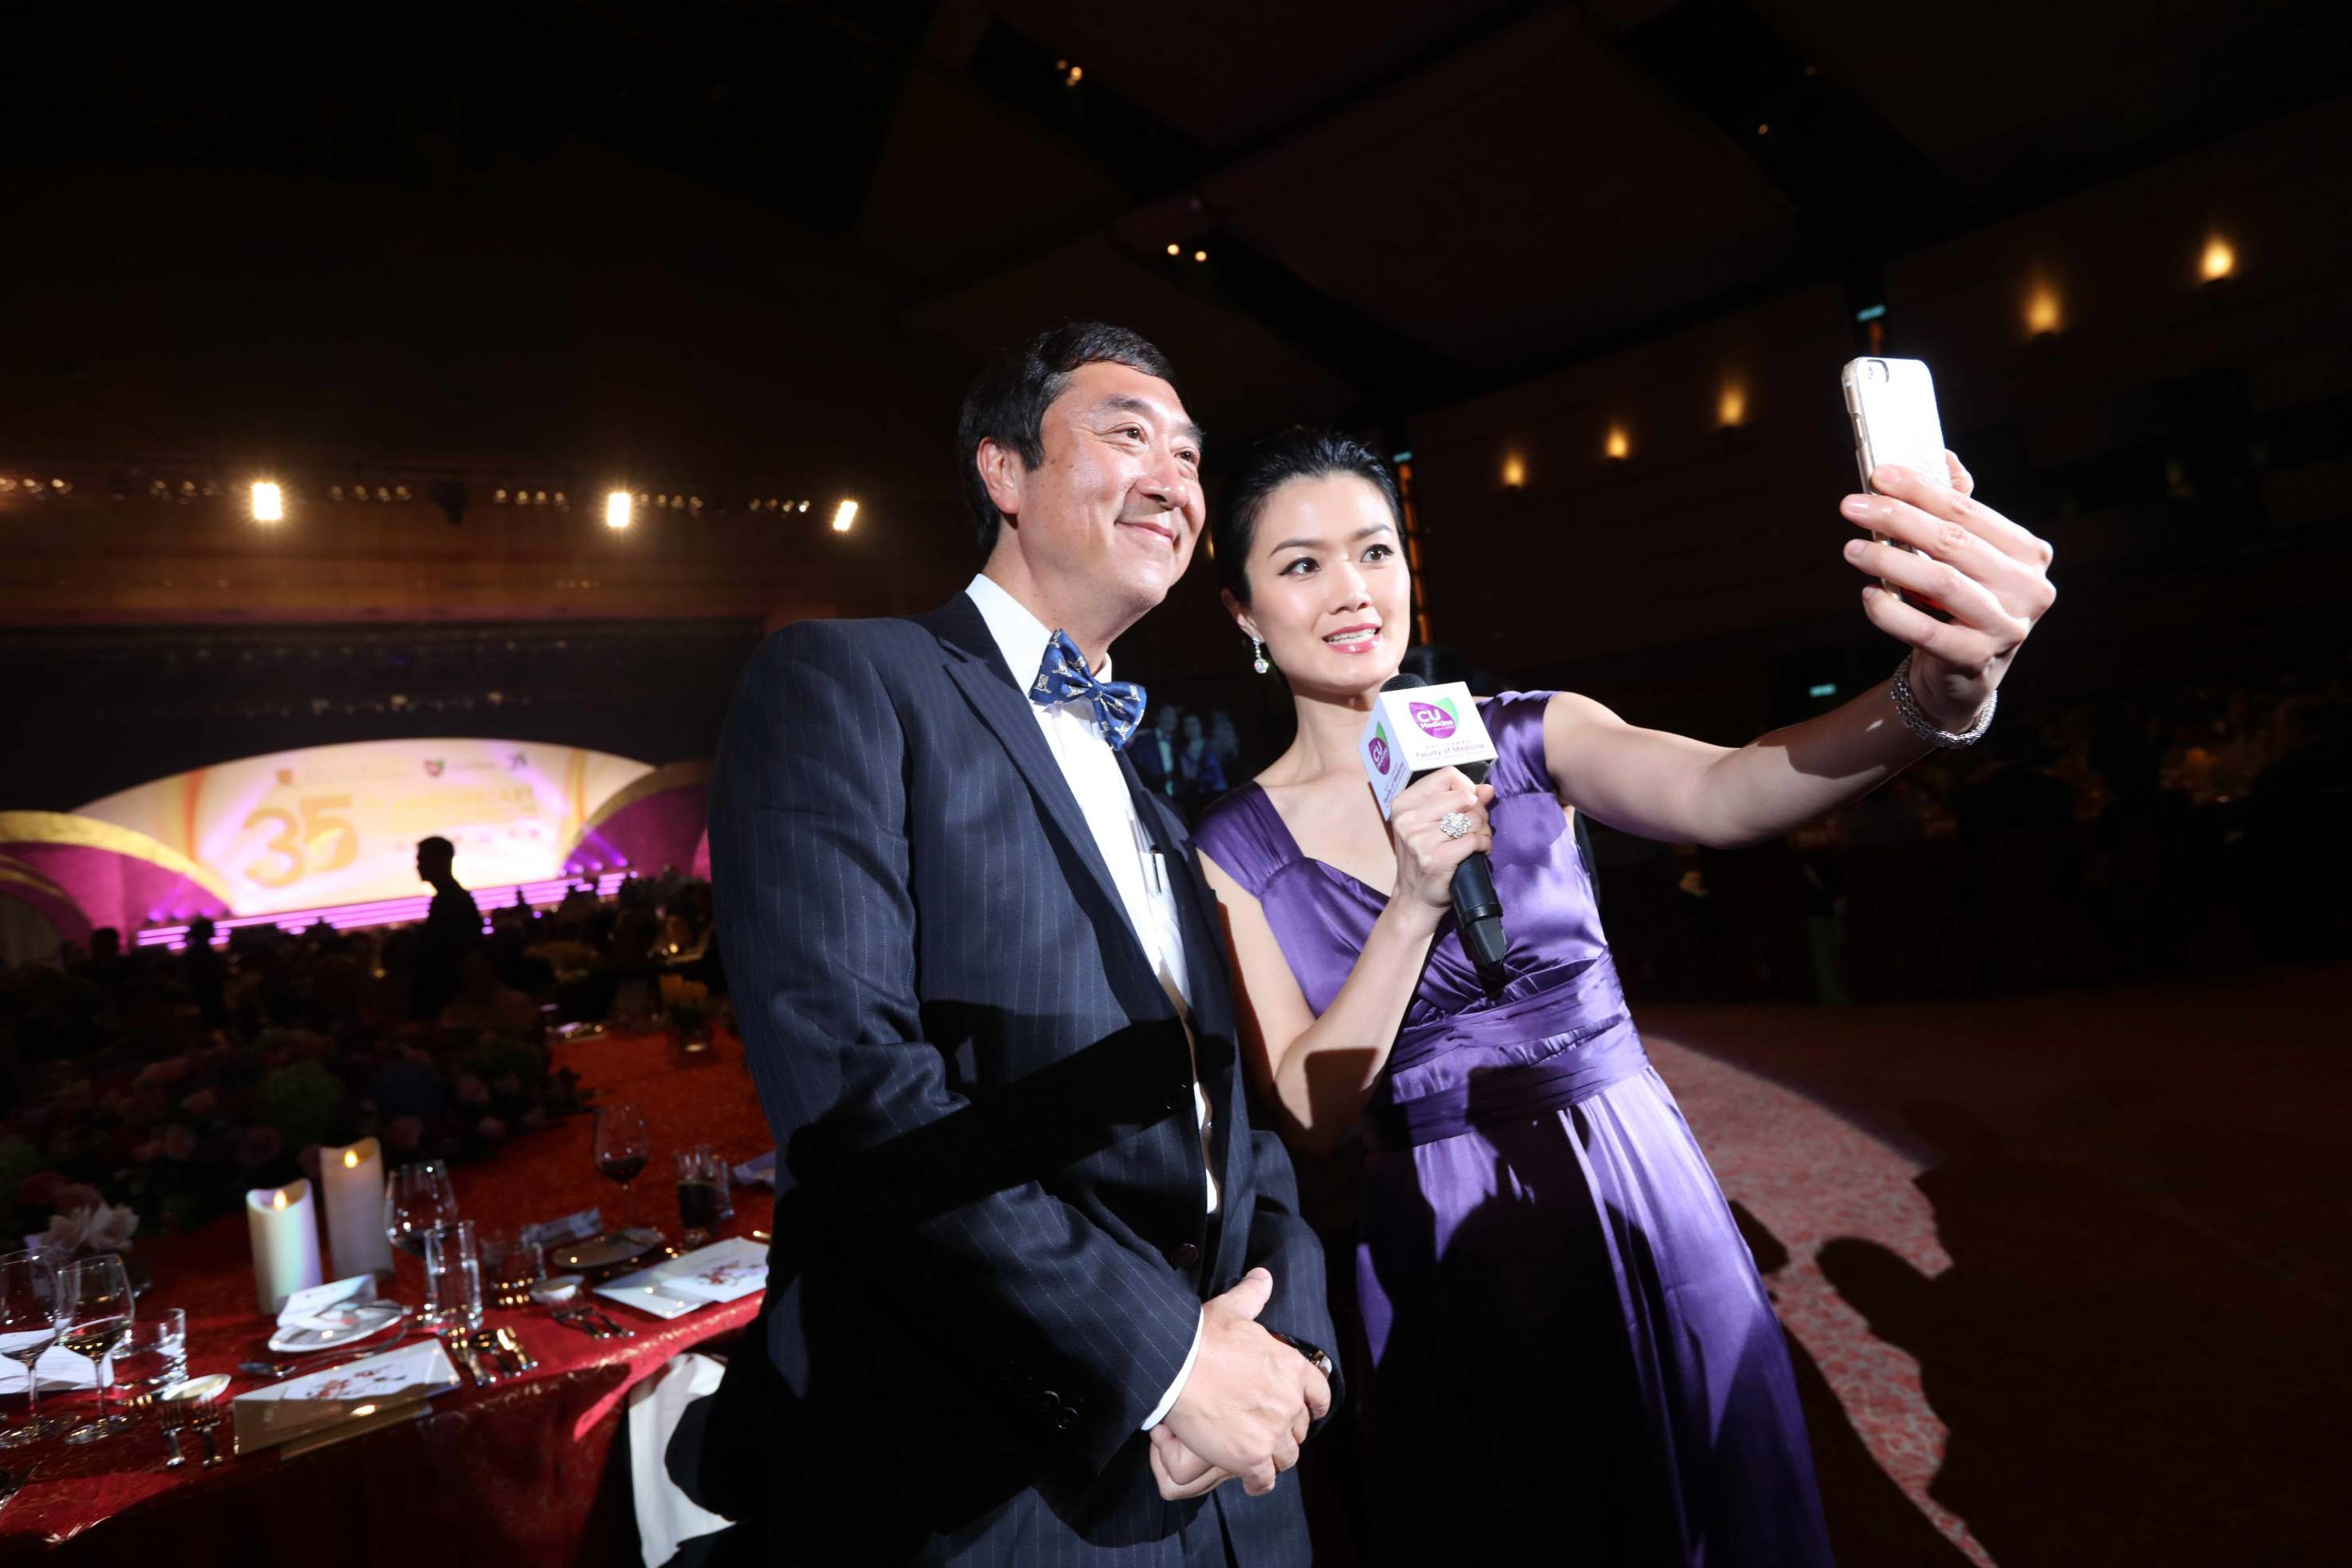 Vice-Chancellor Prof. Joseph SUNG and host of dinner Ms. Akina FONG take a mobile selfie.